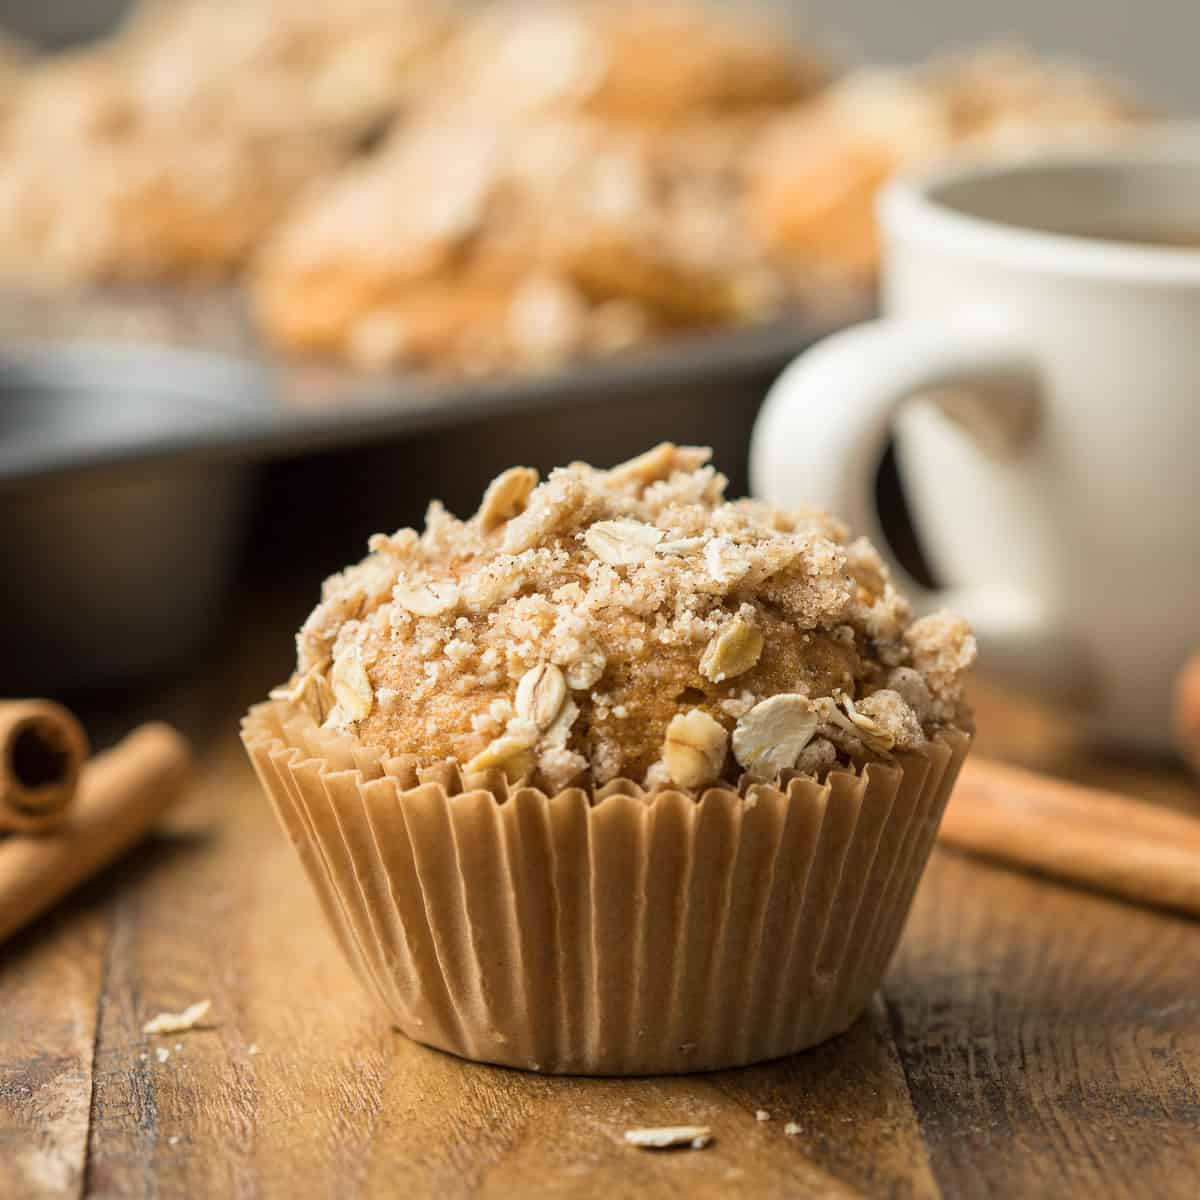 Close up of a Vegan Pumpkin Muffin with streusel on top.